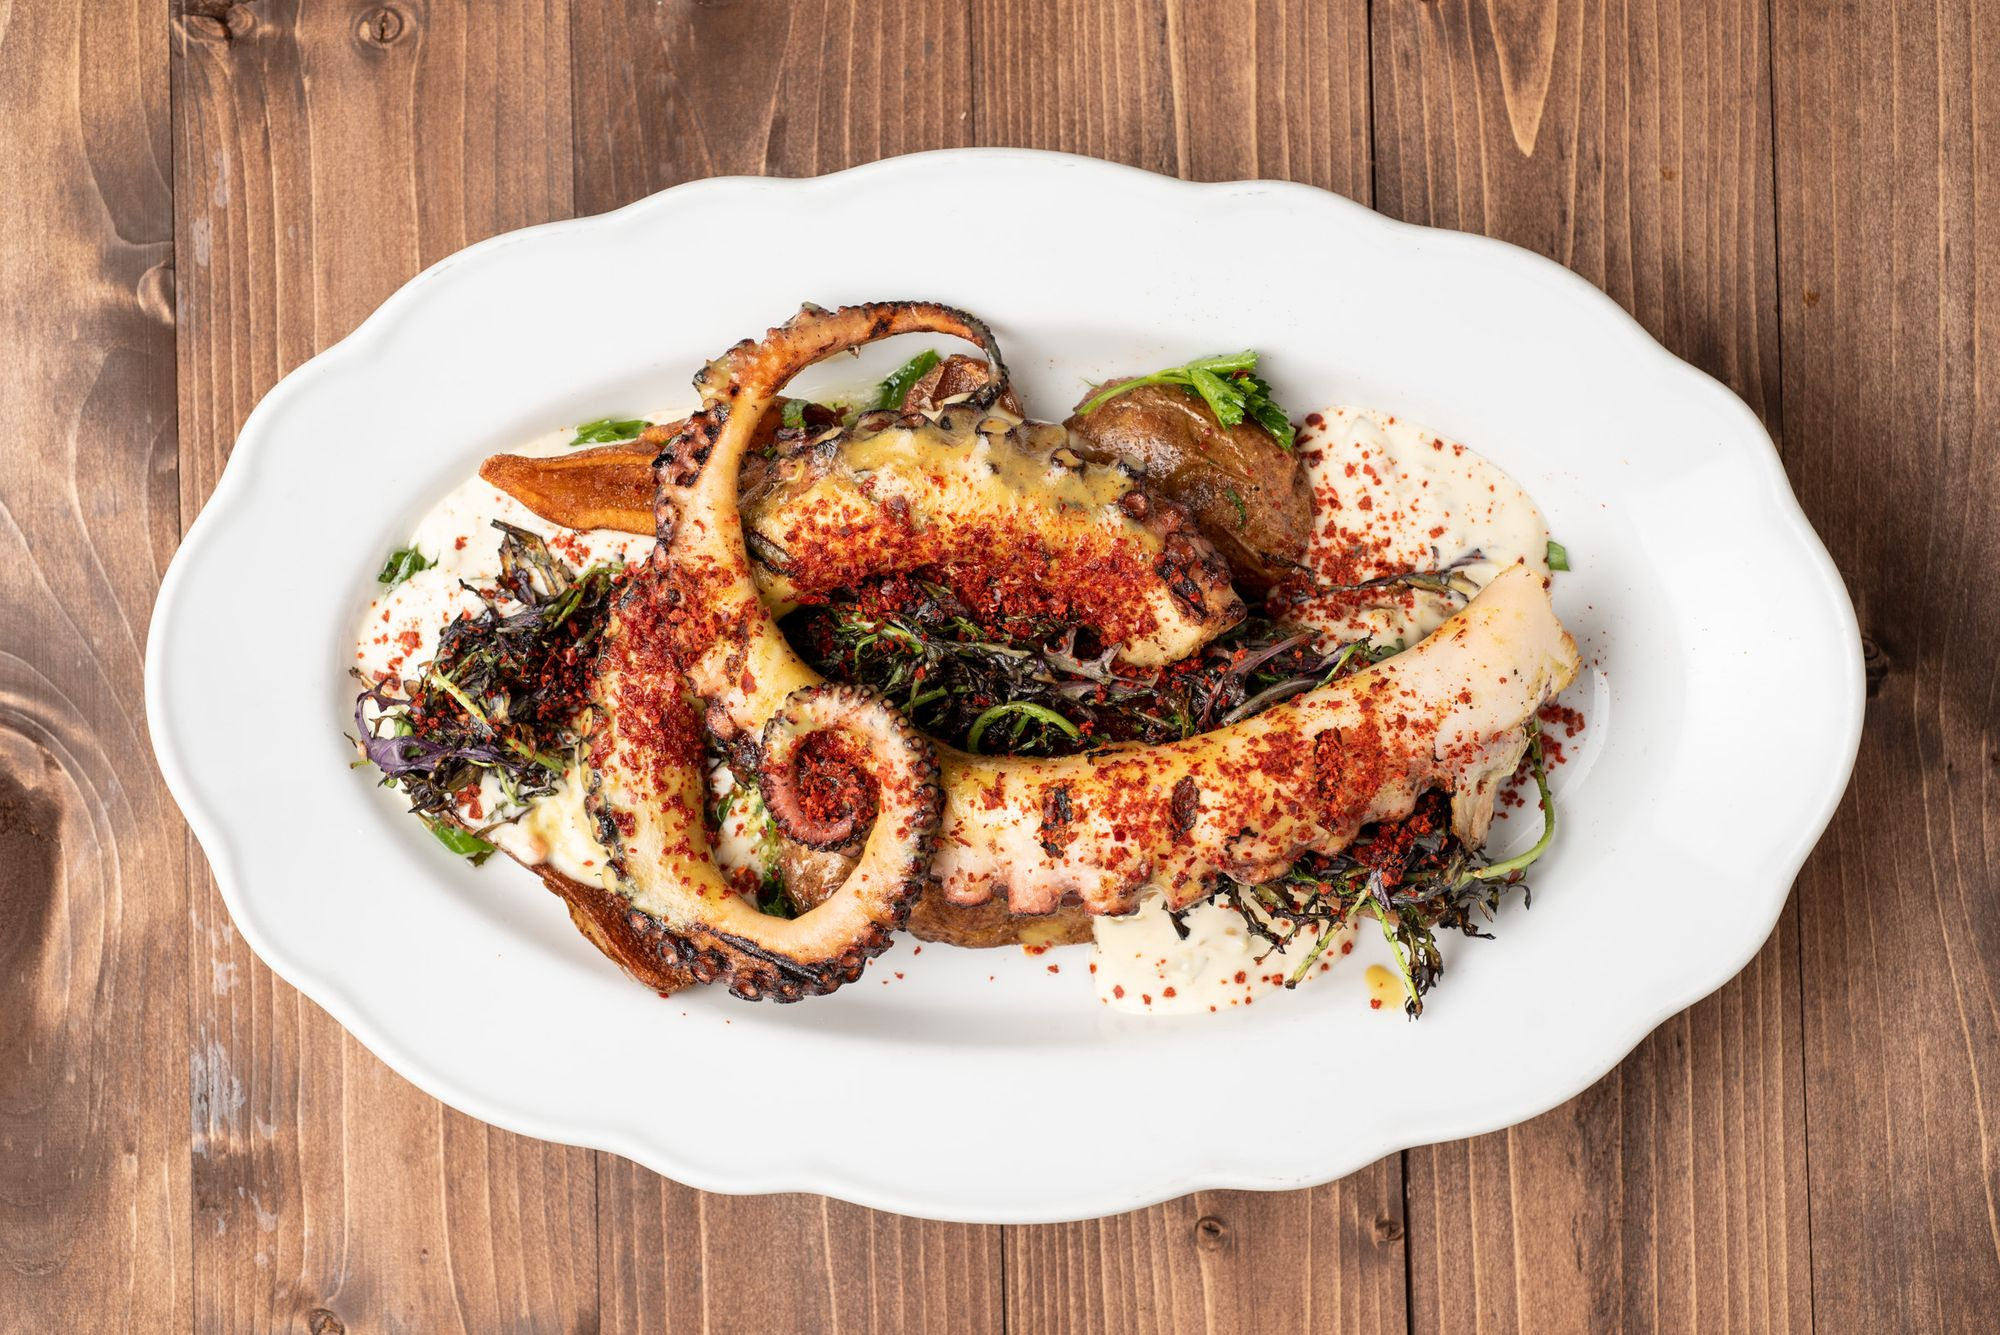 Picture of Charred Octopus From Preux and Proper Restaurant